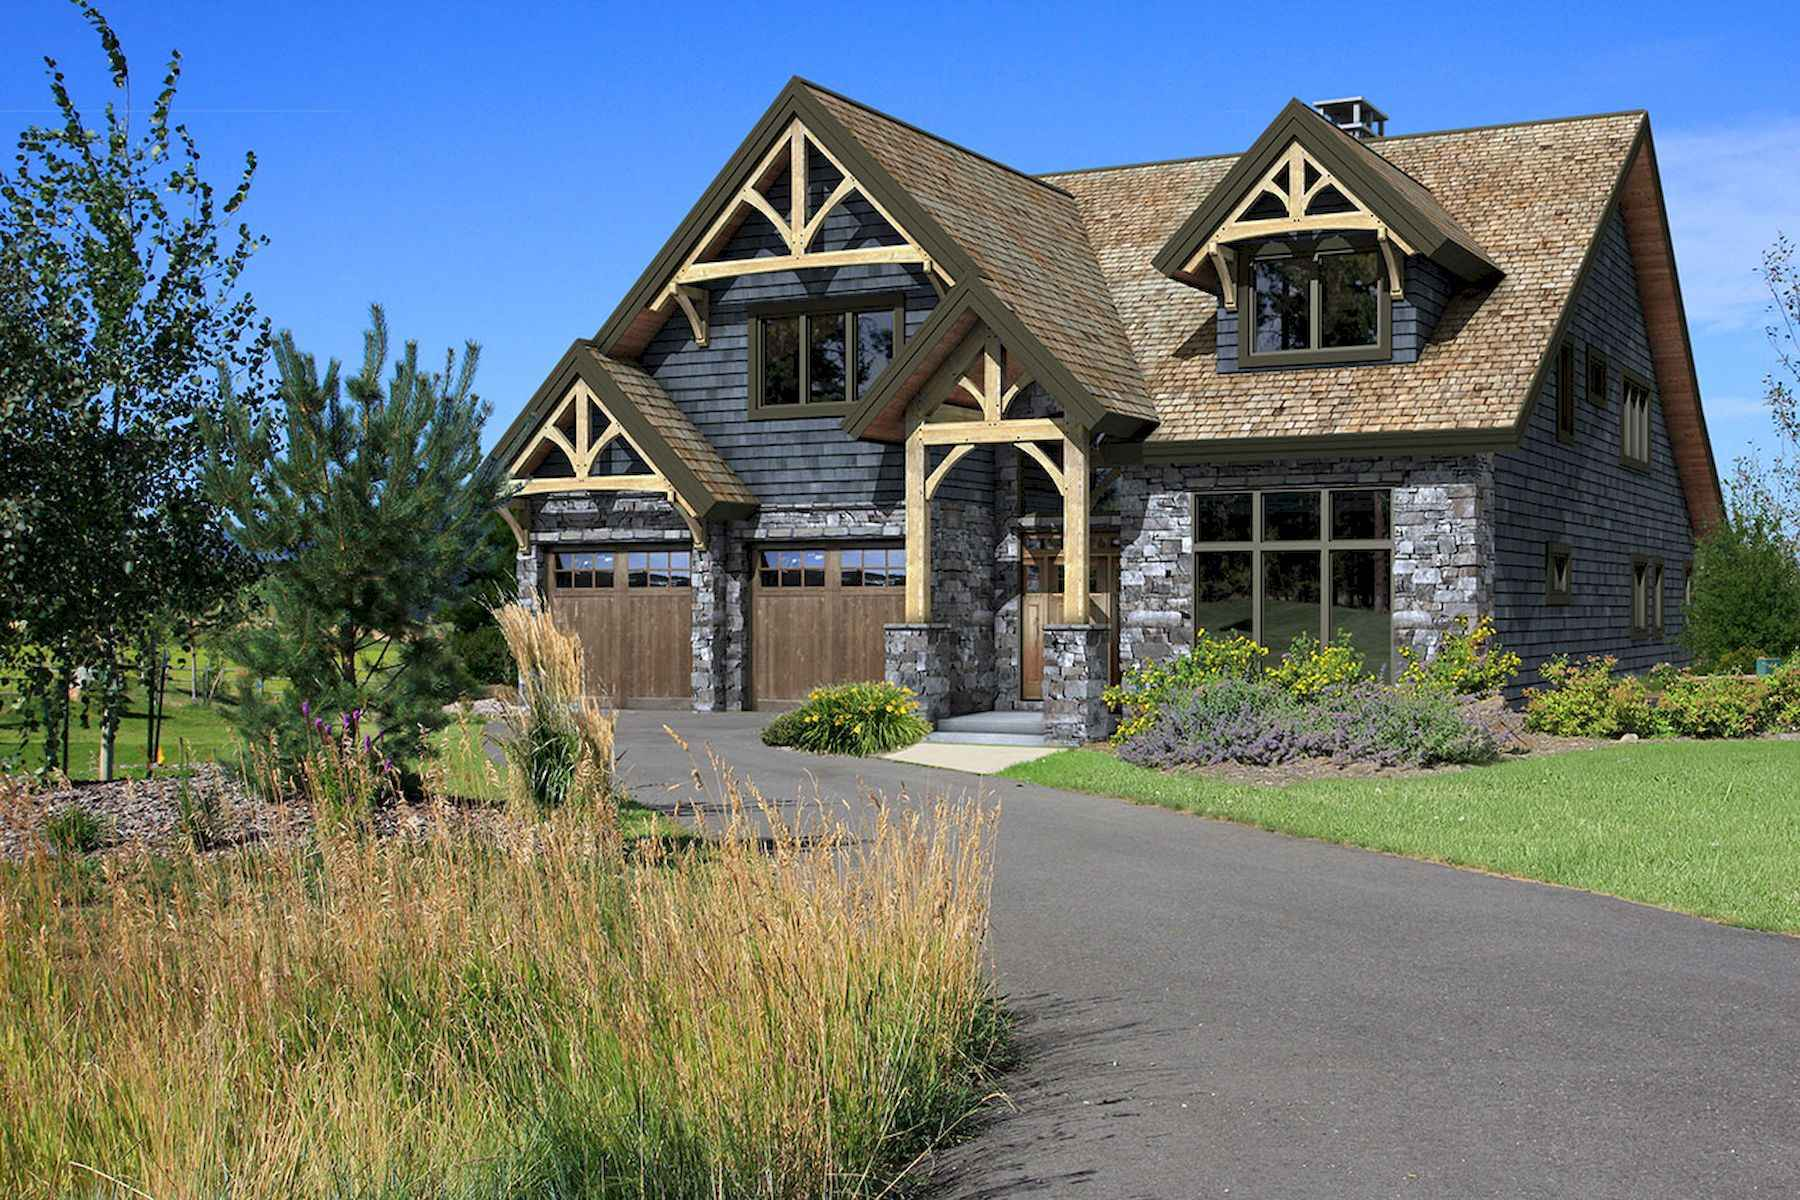 60 Rustic Log Cabin Homes Plans Design Ideas And Remodel (21)